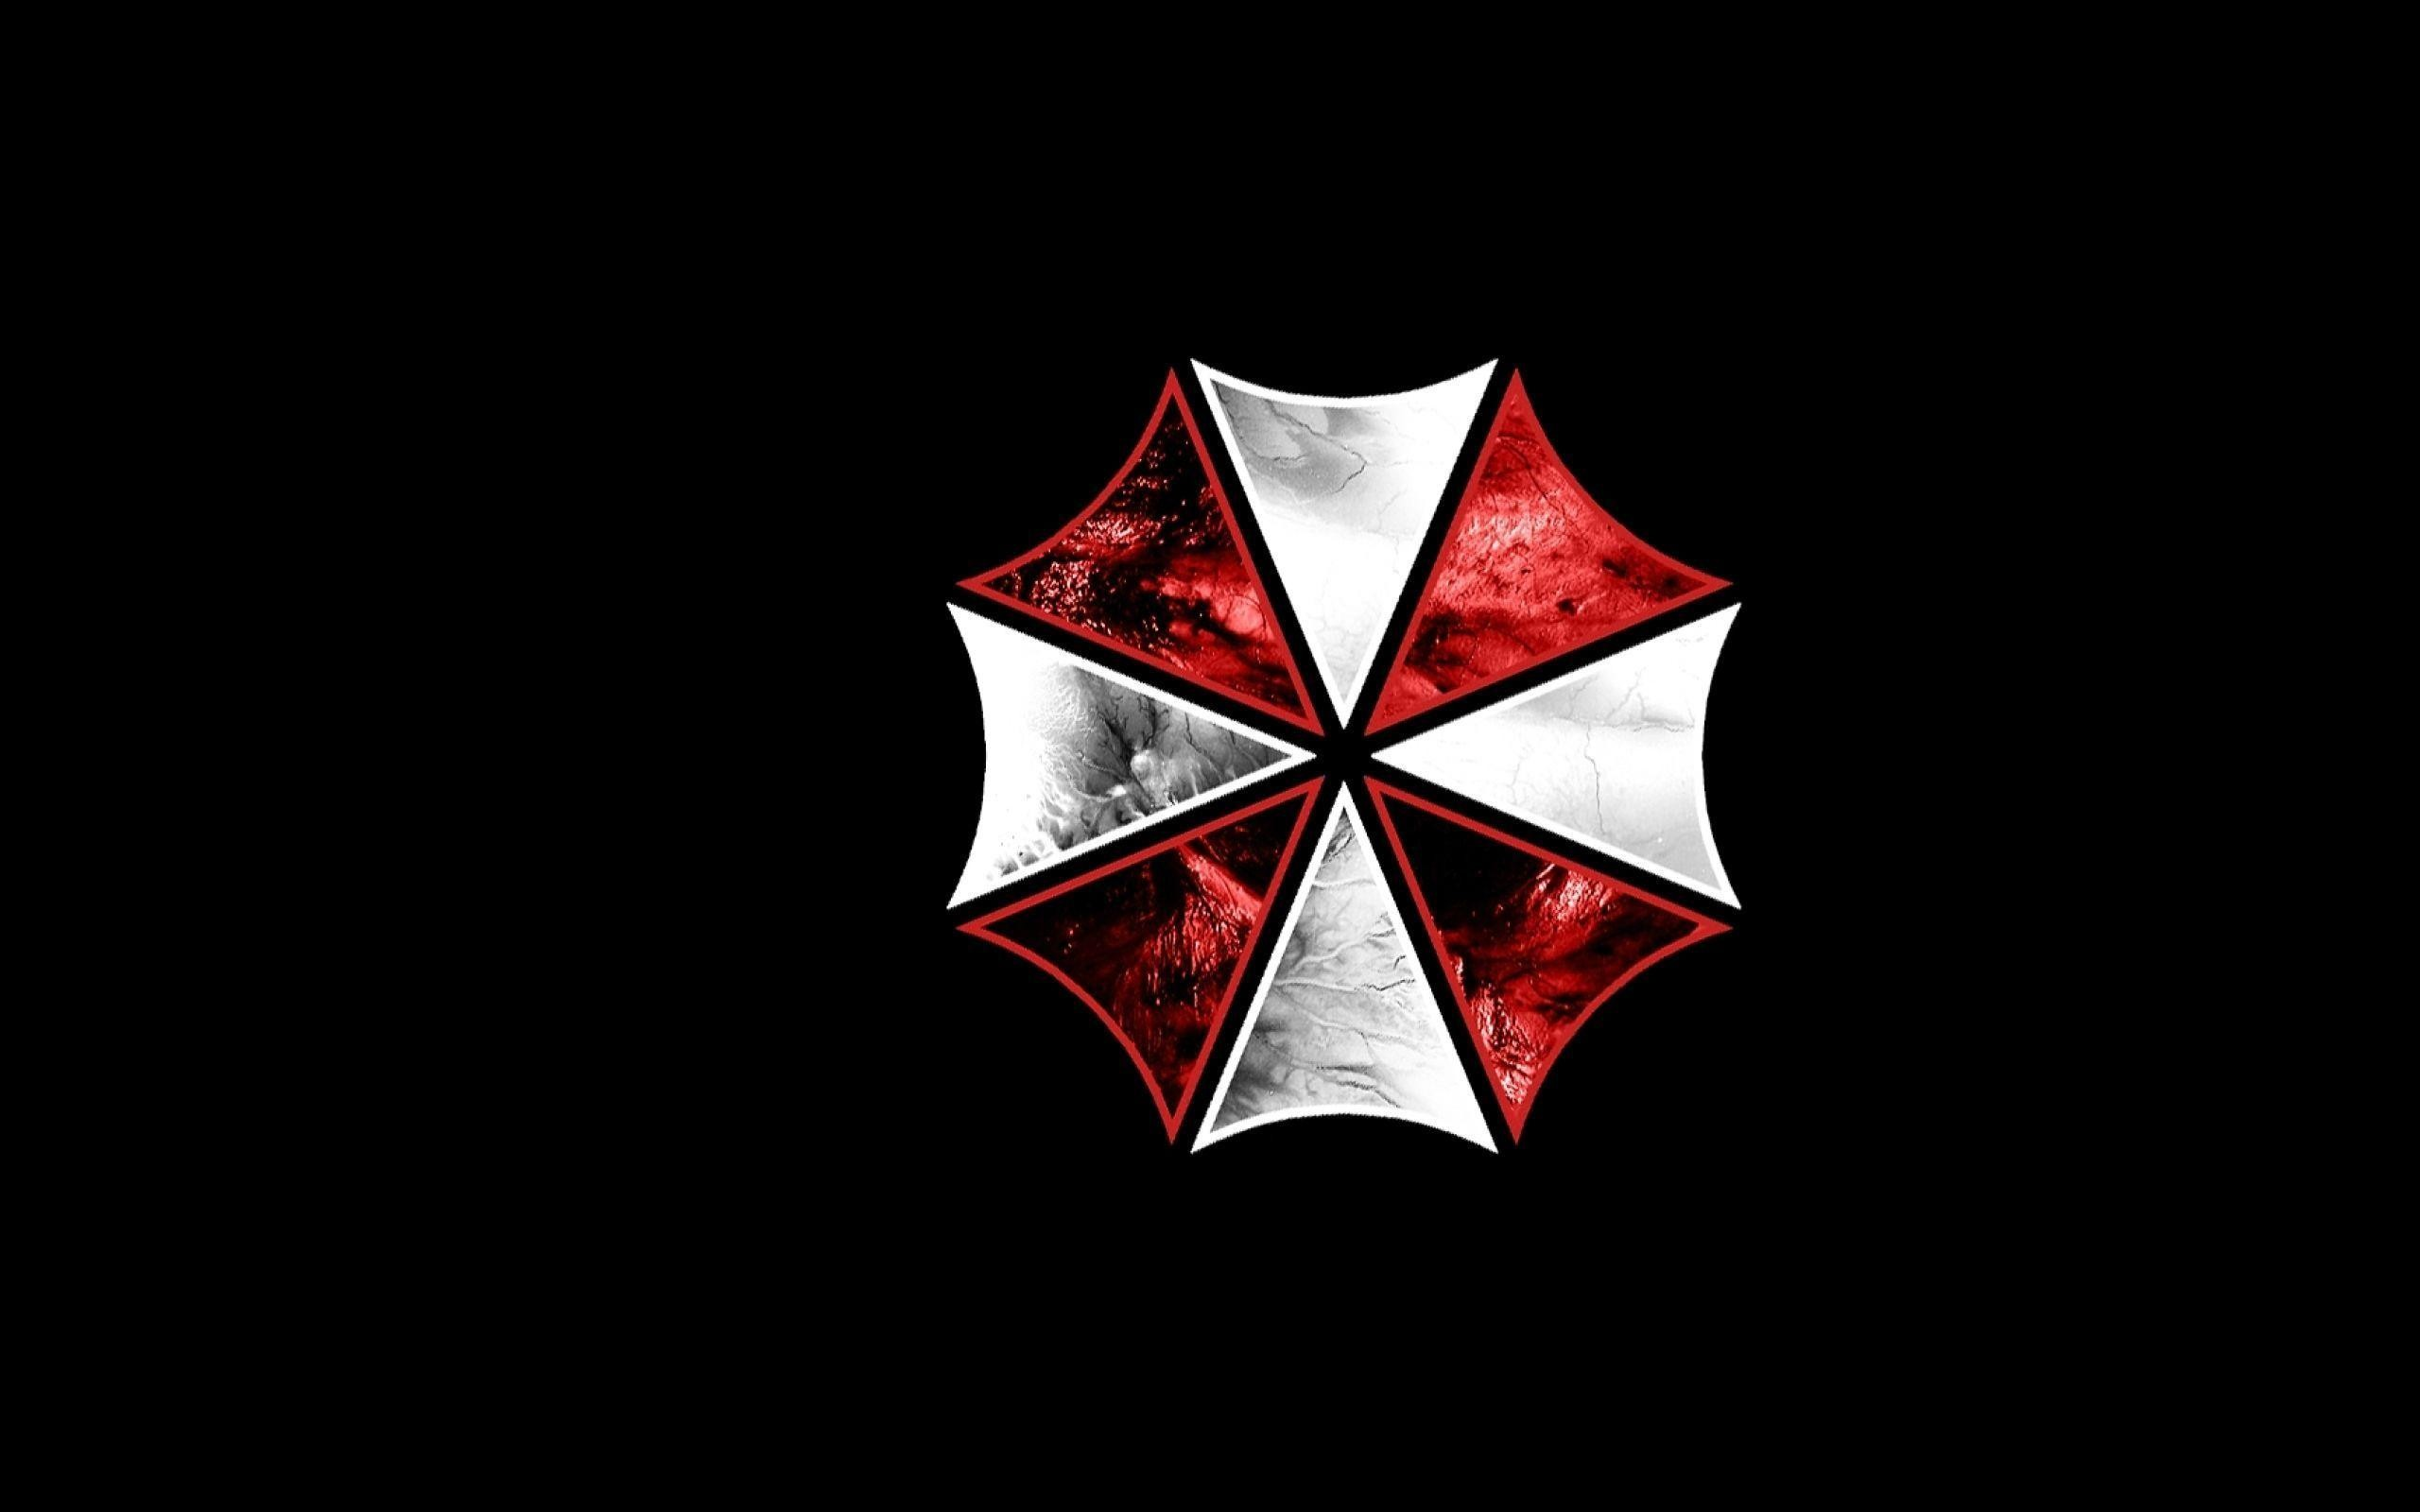 Wallpaper Iphone X Full Hd Umbrella Corporation Live Wallpaper 77 Images